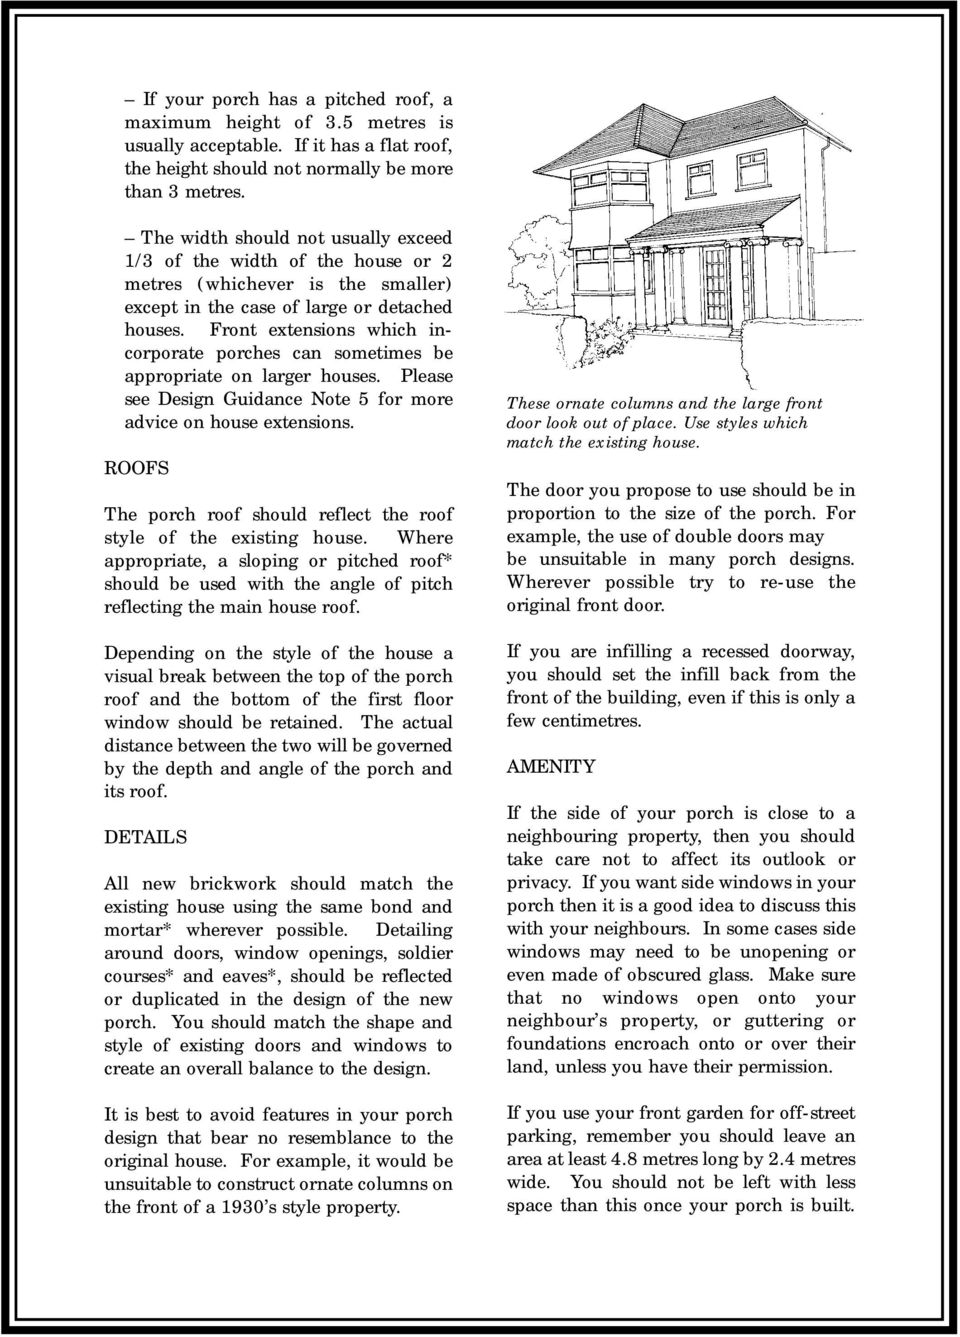 Front extensions which incorporate porches can sometimes be appropriate on larger houses. Please see Design Guidance Note 5 for more advice on house extensions.